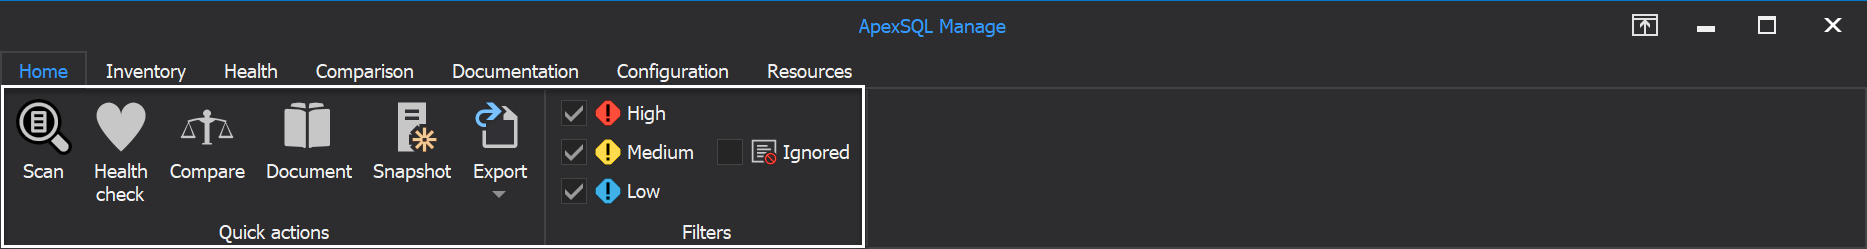 The Home tab of SQL manage instance tool